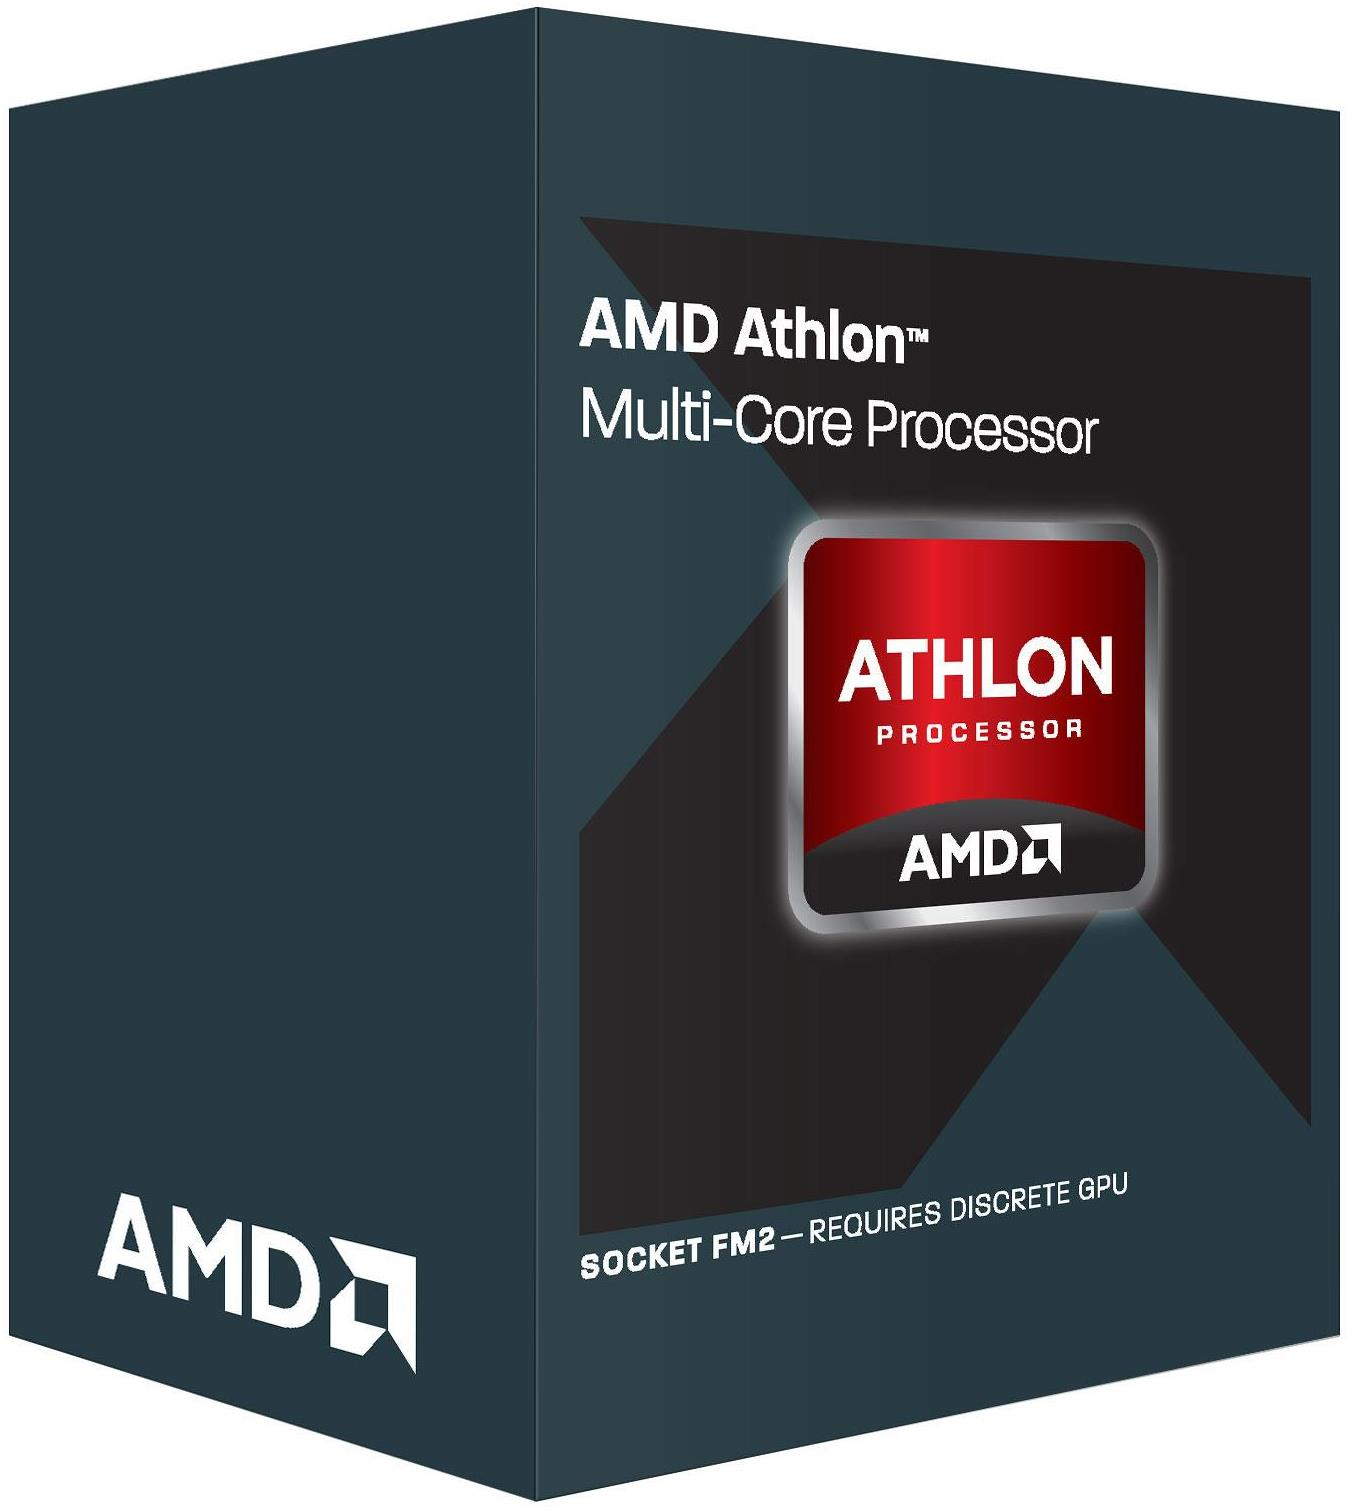 AMD Athlon X4 Black Edition Quad Core Unlocked Processor